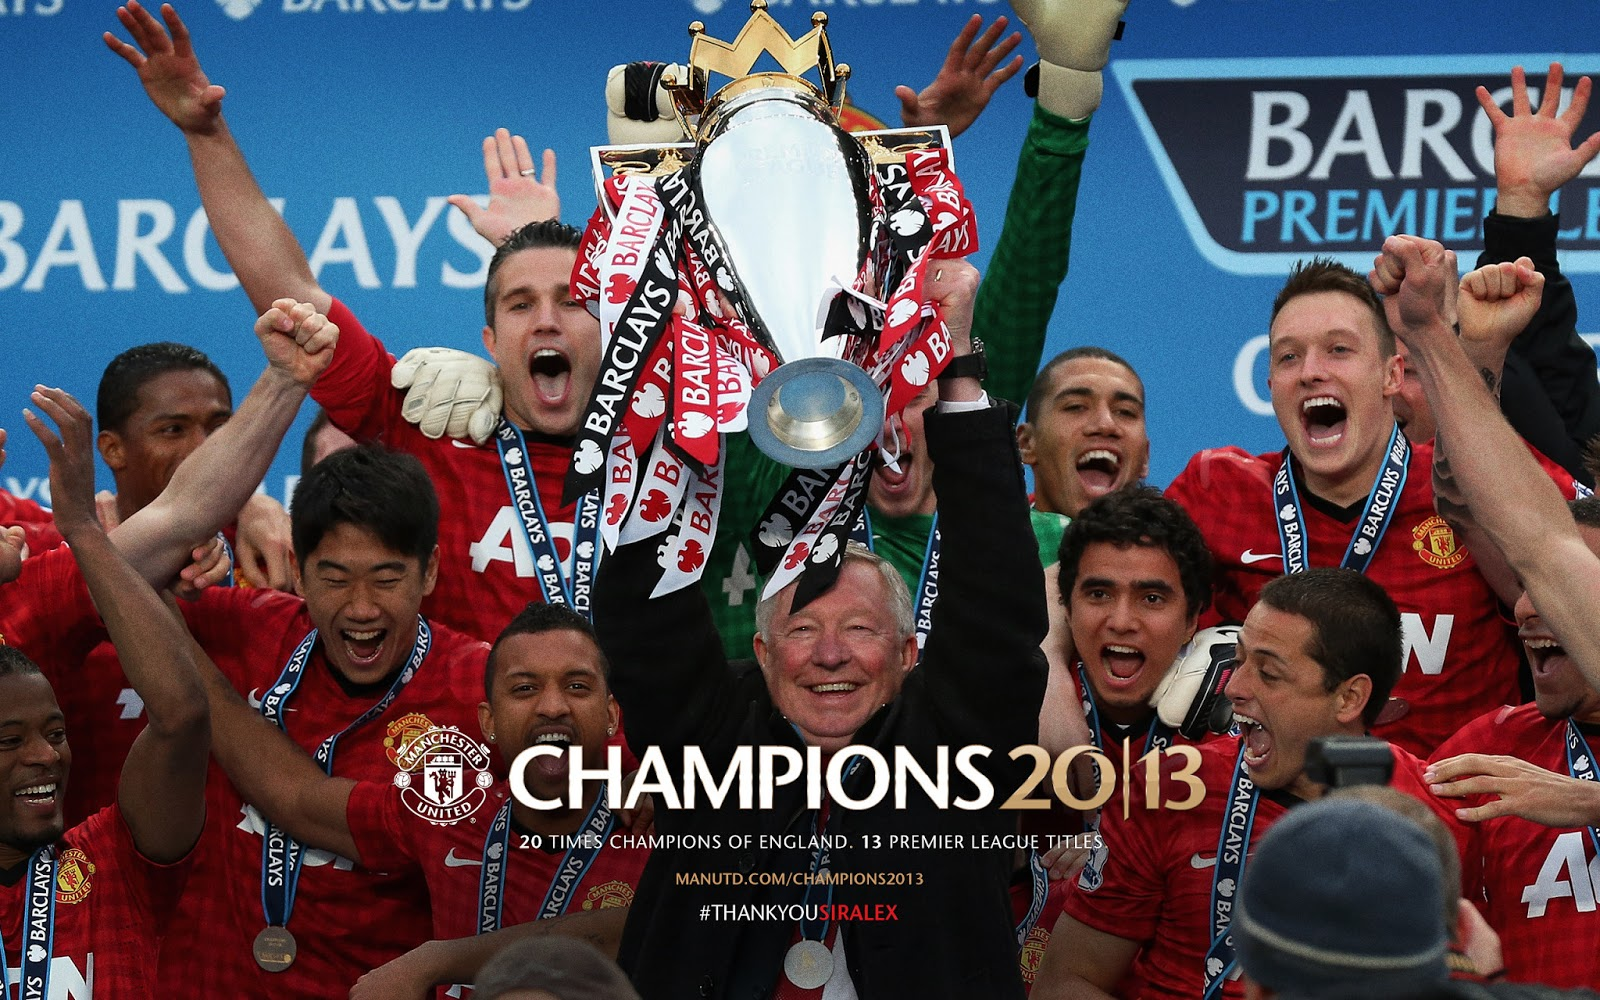 Il Manchester United vince la premier league